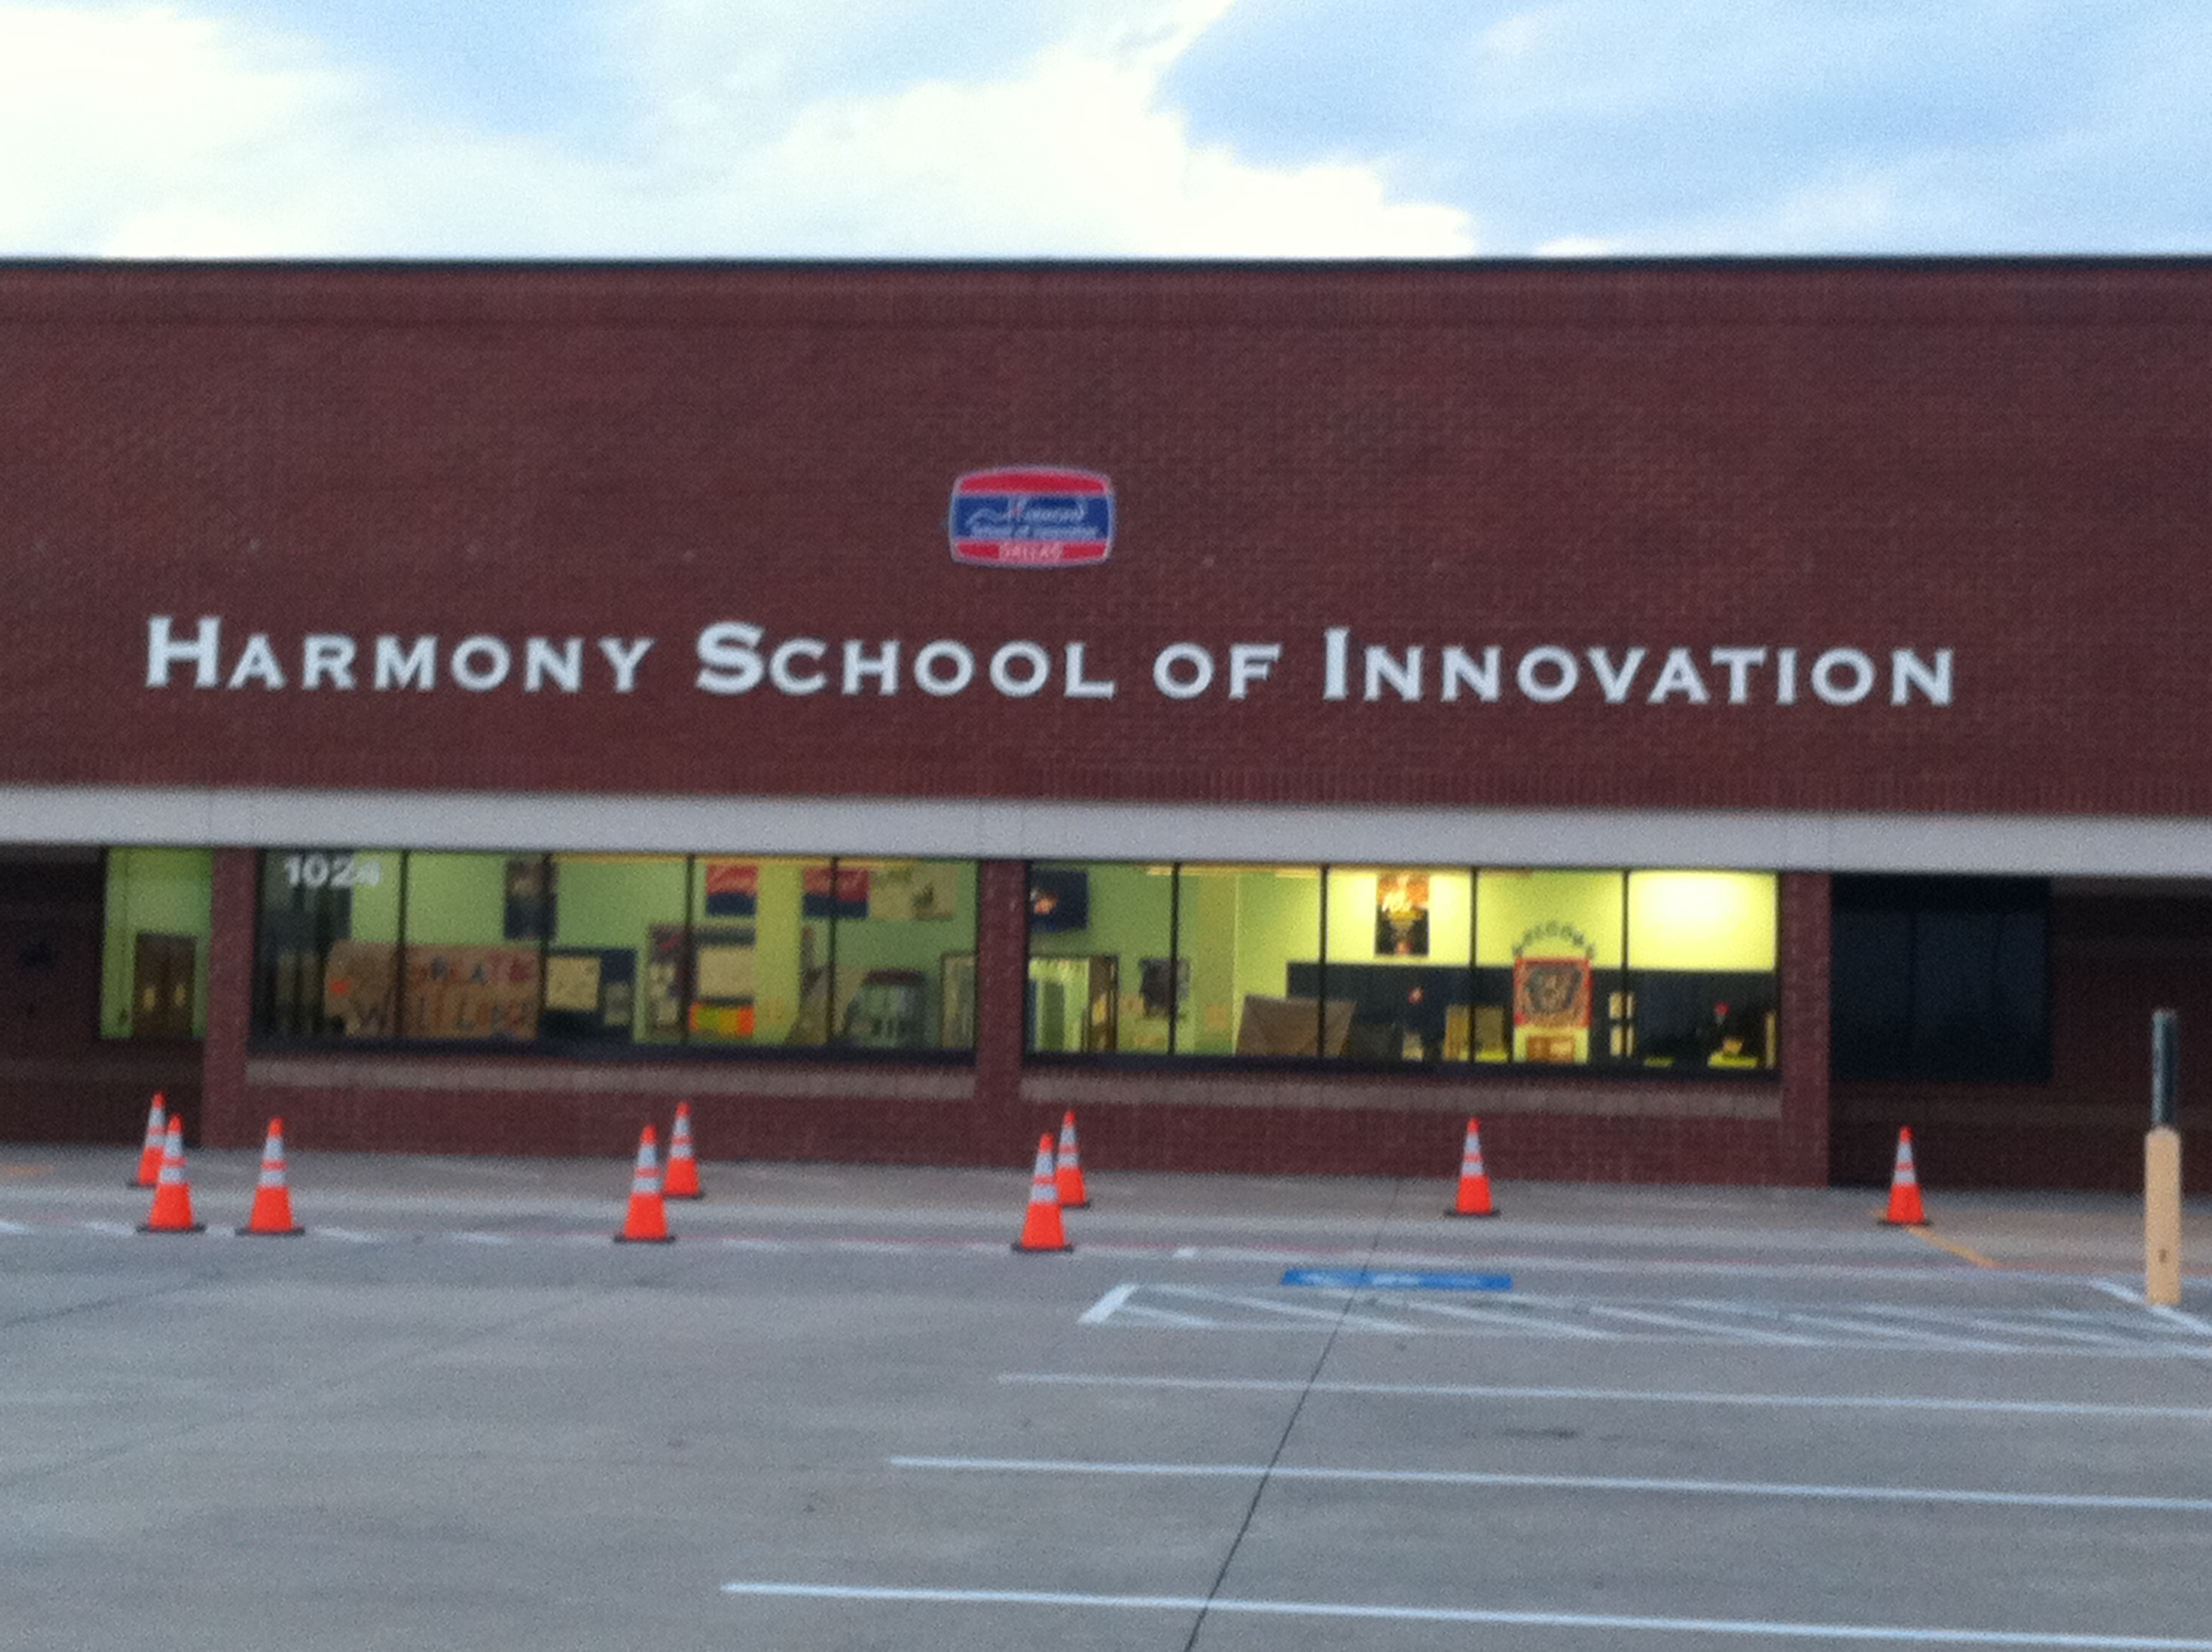 Harmony Public Schools are high performing K-12 college preparatory charter  schools focusing on math, science, engineering, and computer technologies.